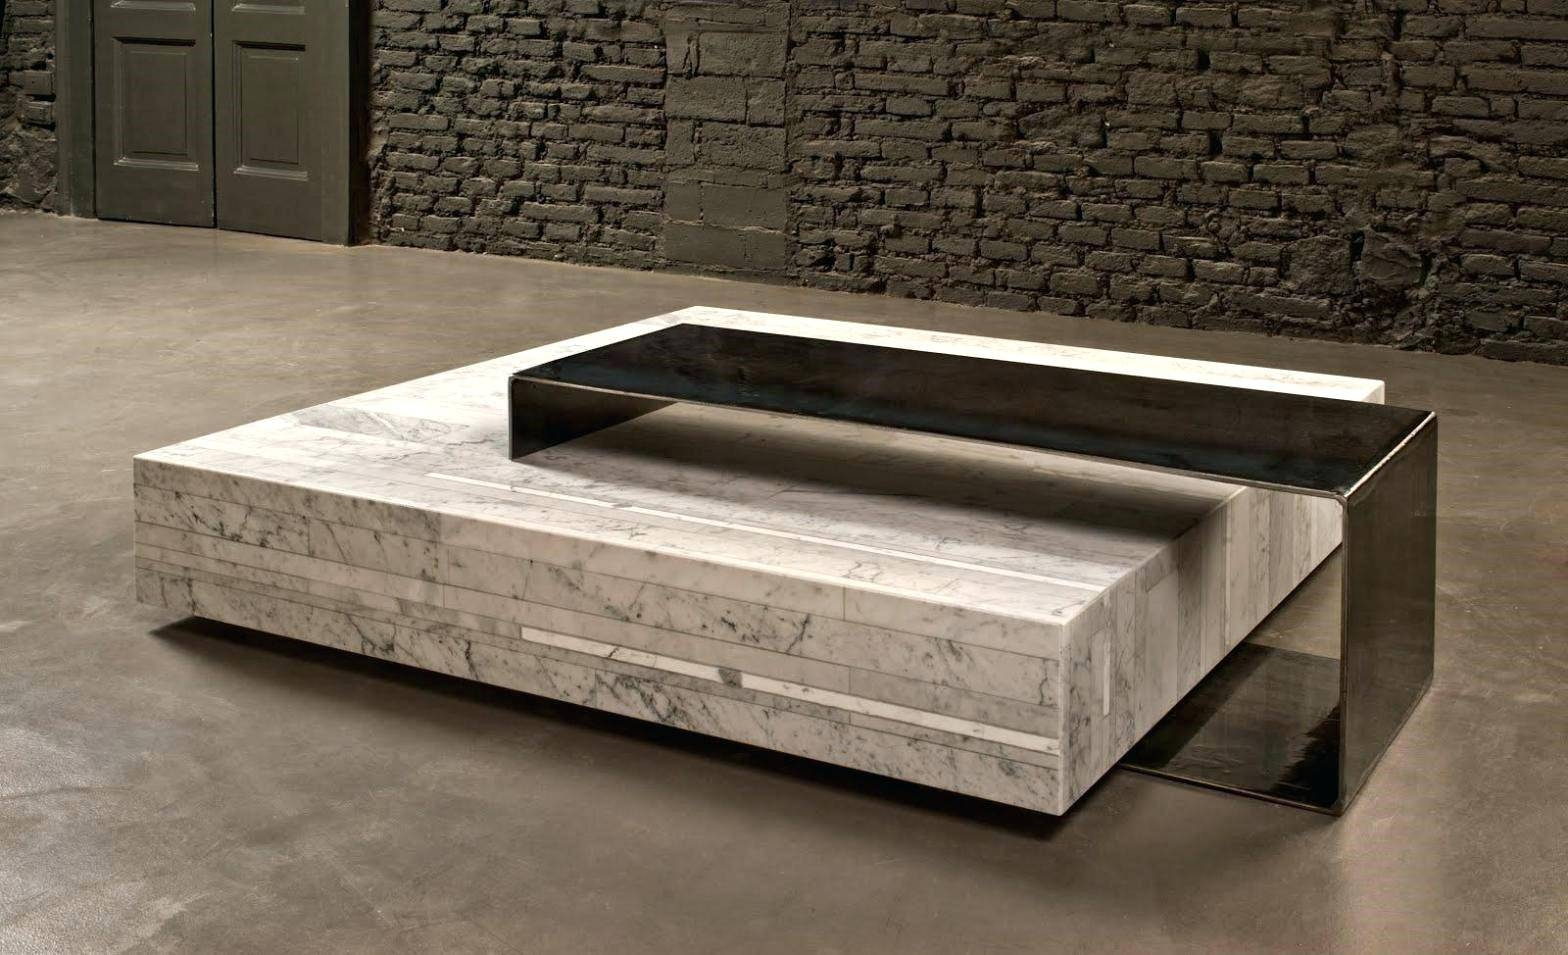 Duncan Phyfe Coffee Table | Idi Design | Coffee Tables Decoration intended for Swirl Glass Coffee Tables (Image 9 of 30)